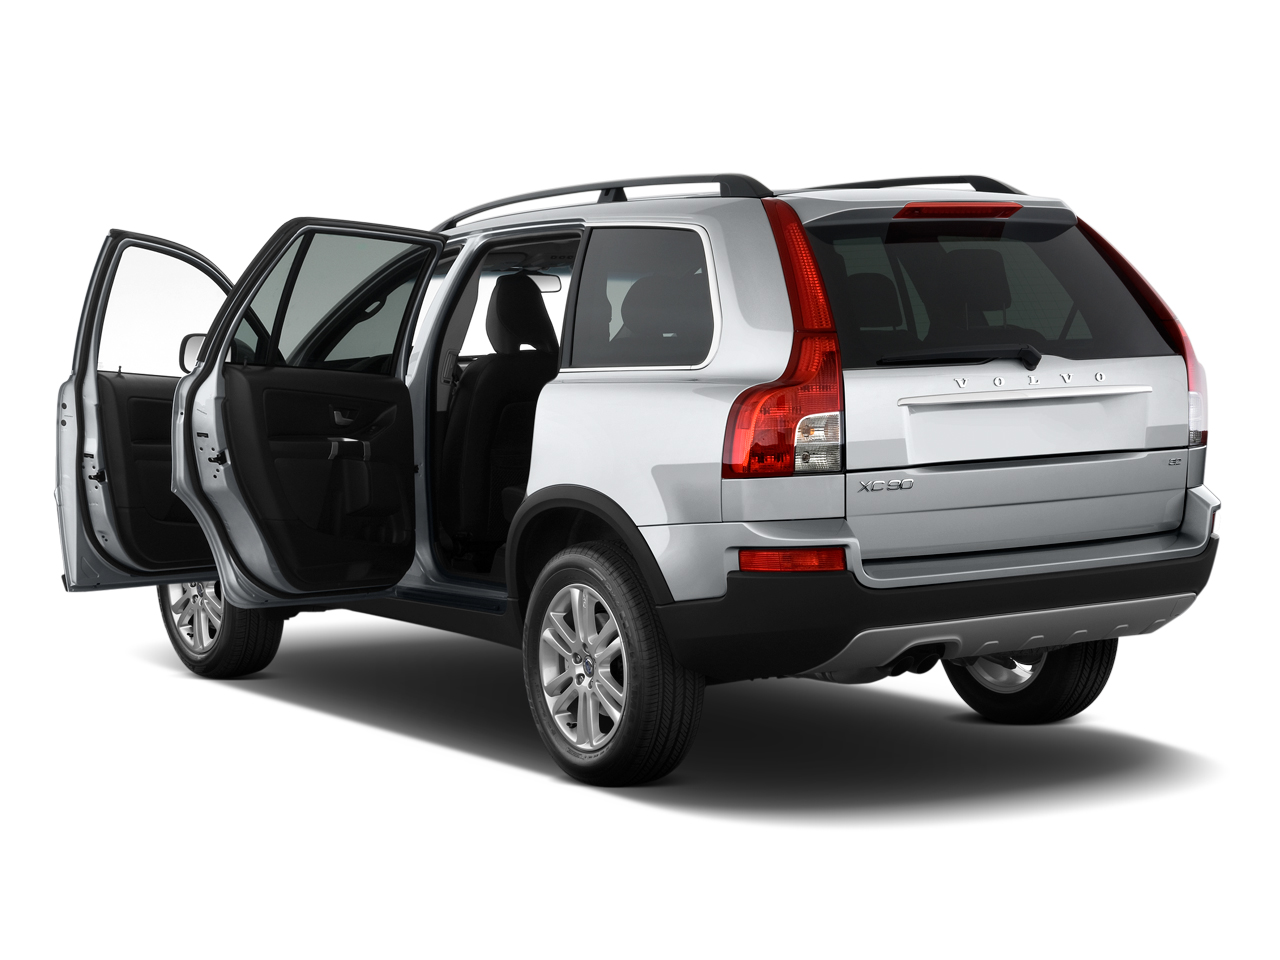 2009 volvo xc90 awd volvo crossover suv review automobile magazine. Black Bedroom Furniture Sets. Home Design Ideas